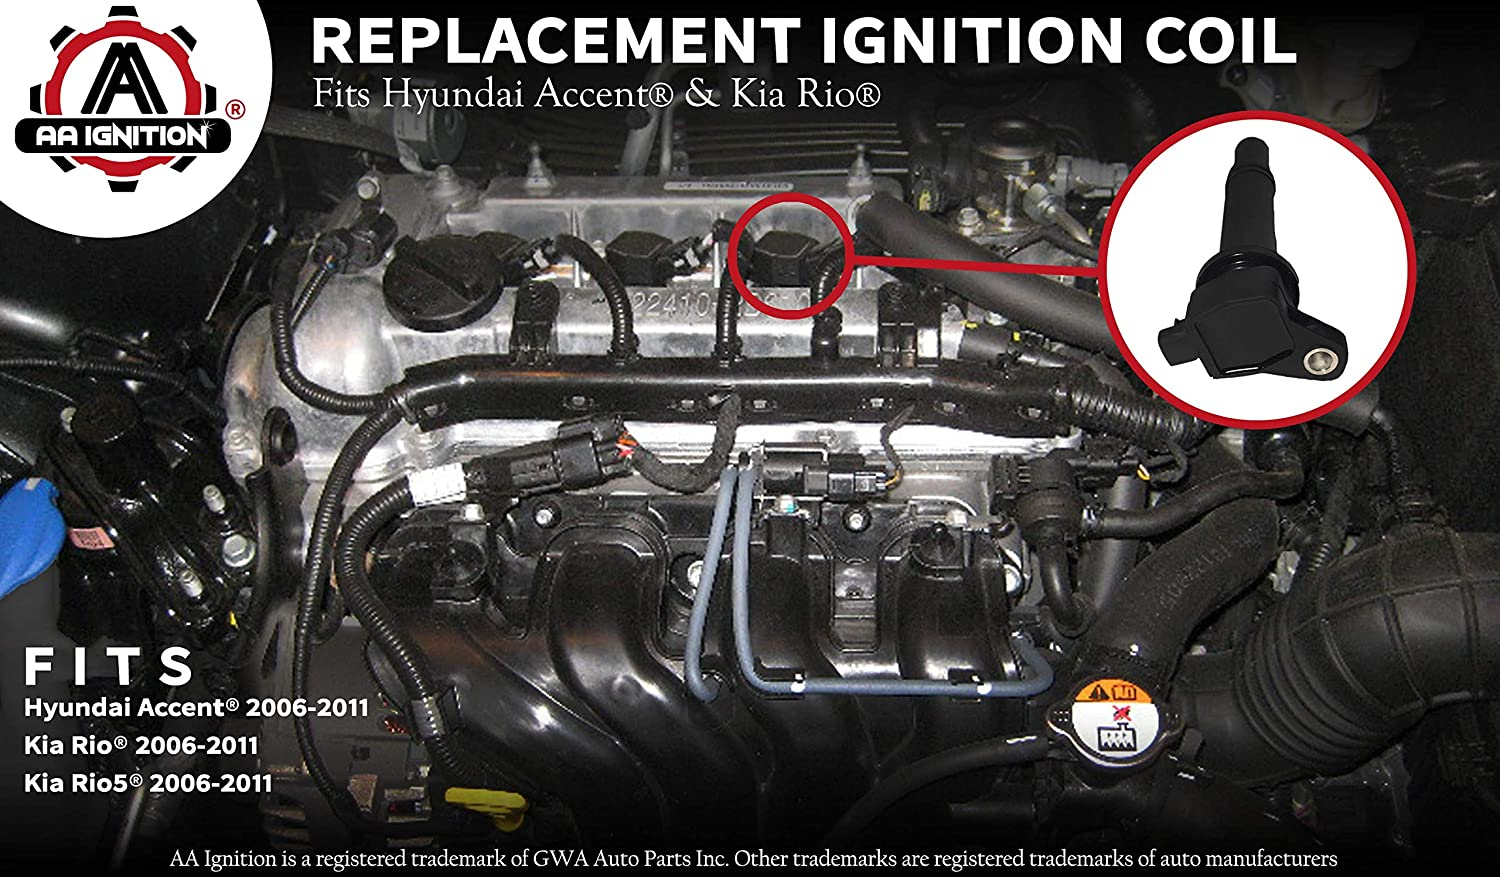 amazon com: ignition coil pack - fits hyundai accent, kia rio - replaces  27301-26640 - ignition coil pack fits 2010 hyundai accent, 2009 hyundai  accent,